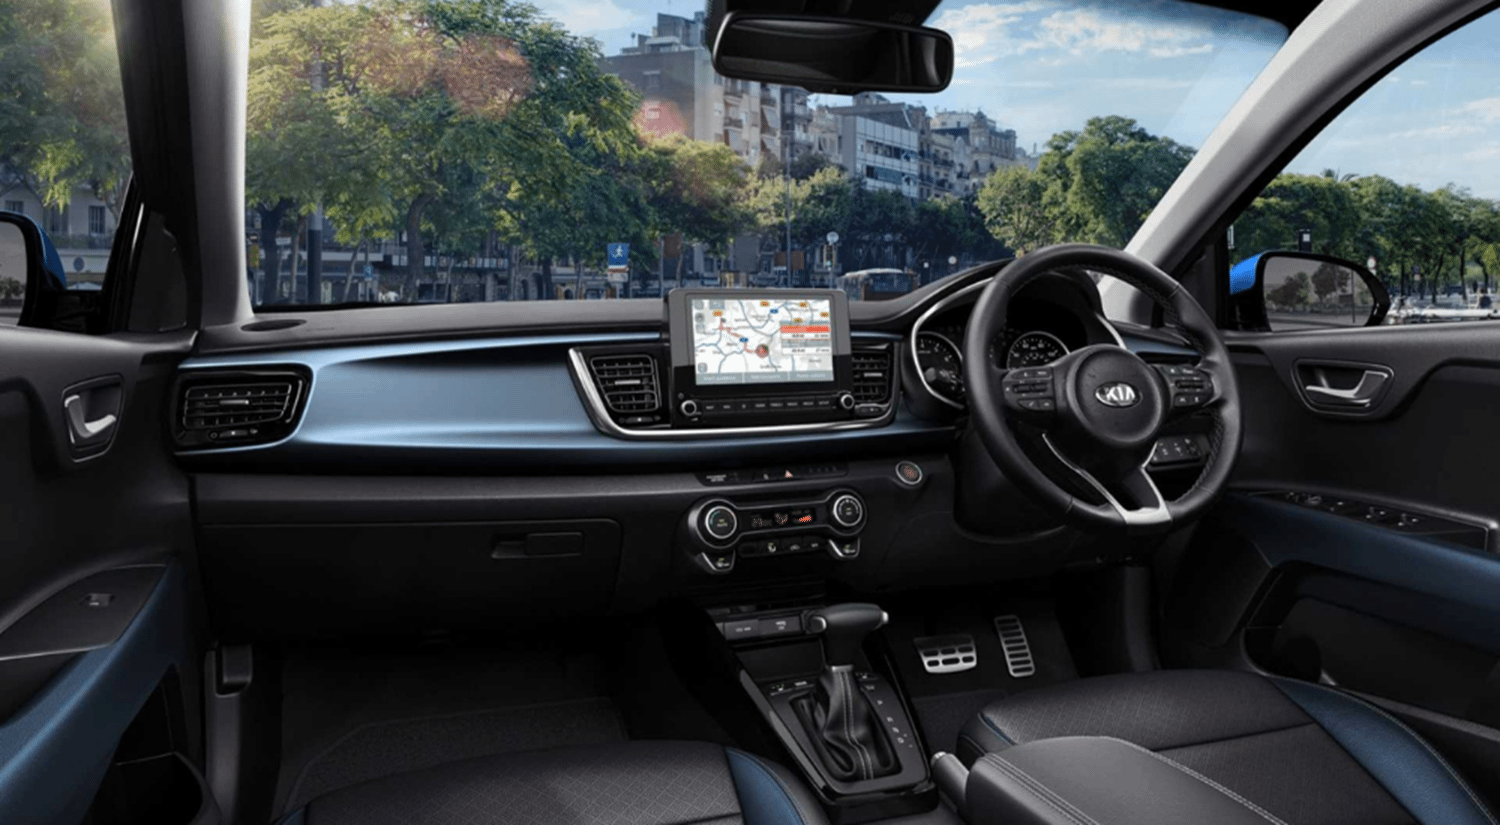 New Kia Rio 2021 inside cockpit